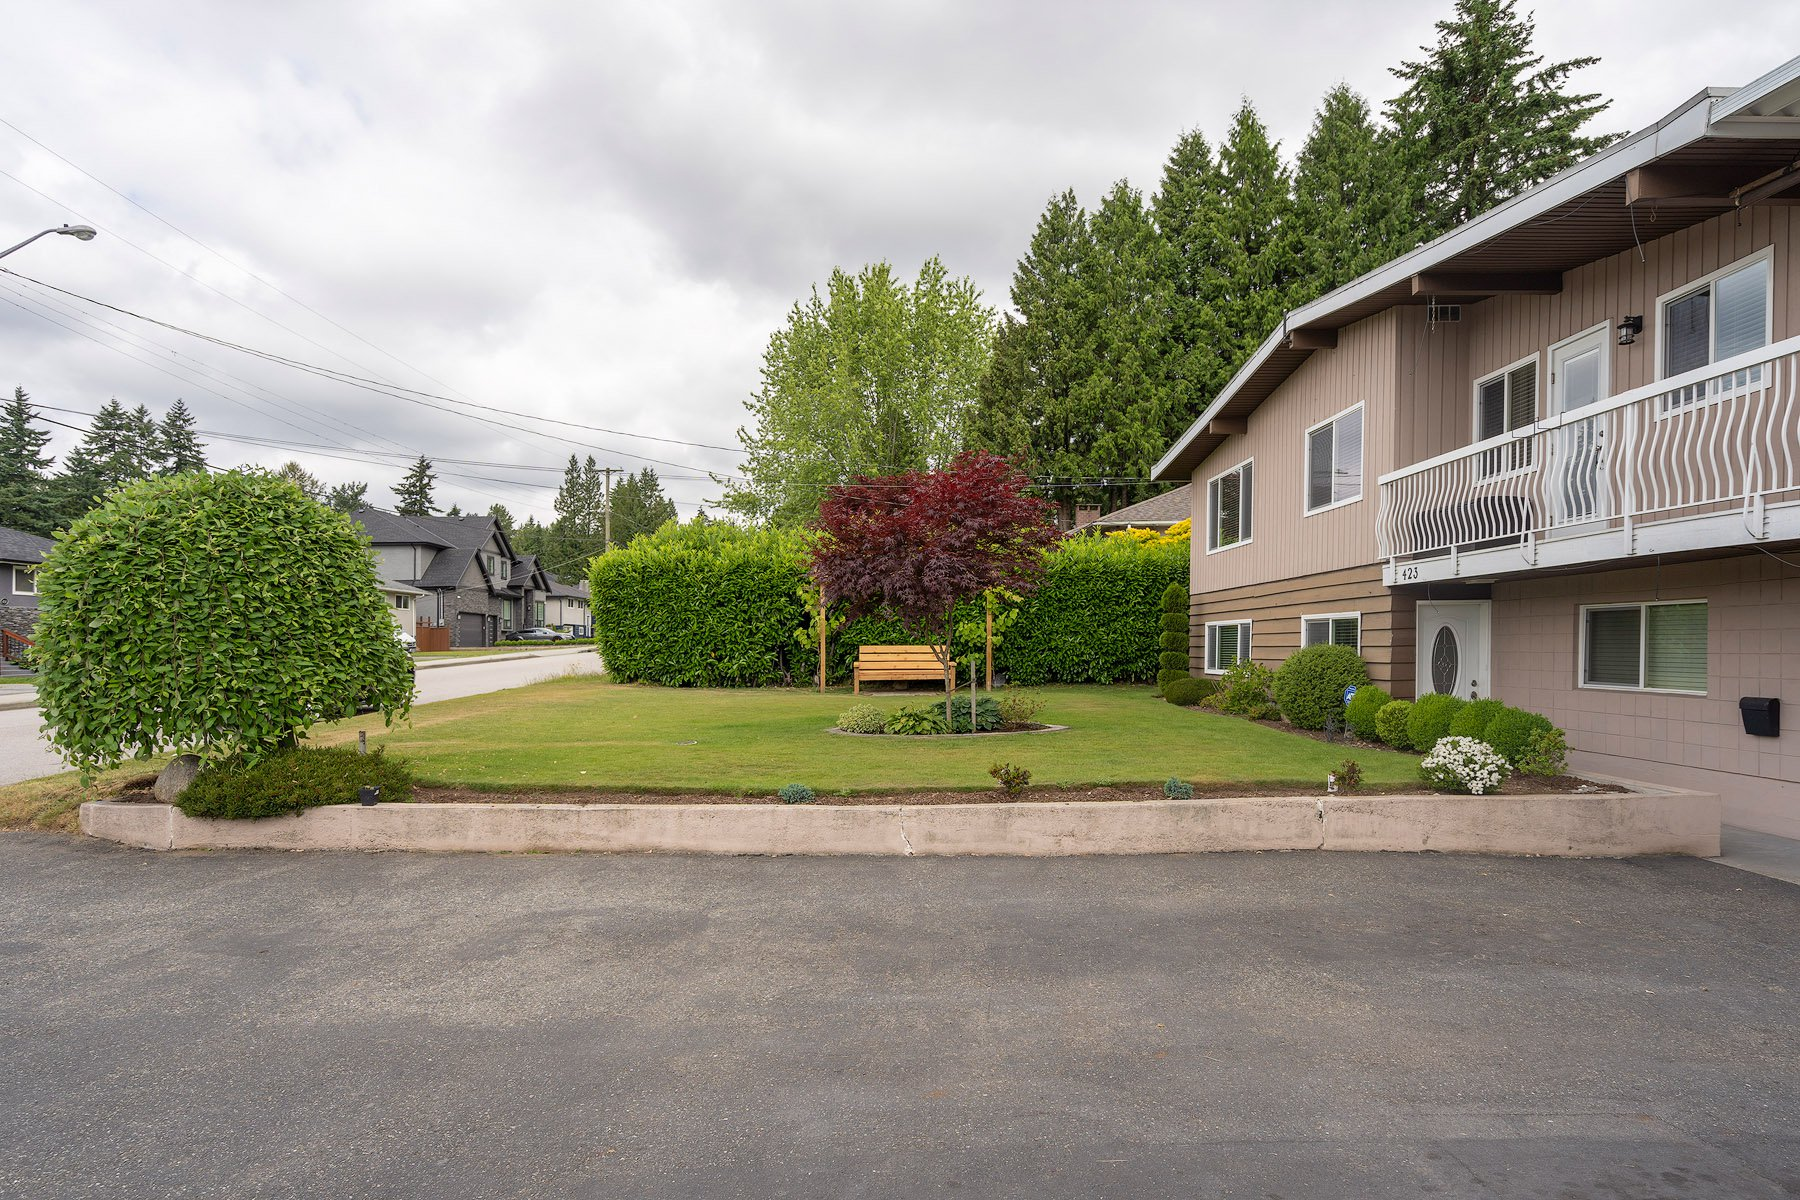 Photo 31: Photos: 423 MONTGOMERY Street in Coquitlam: Central Coquitlam House for sale : MLS®# R2380693